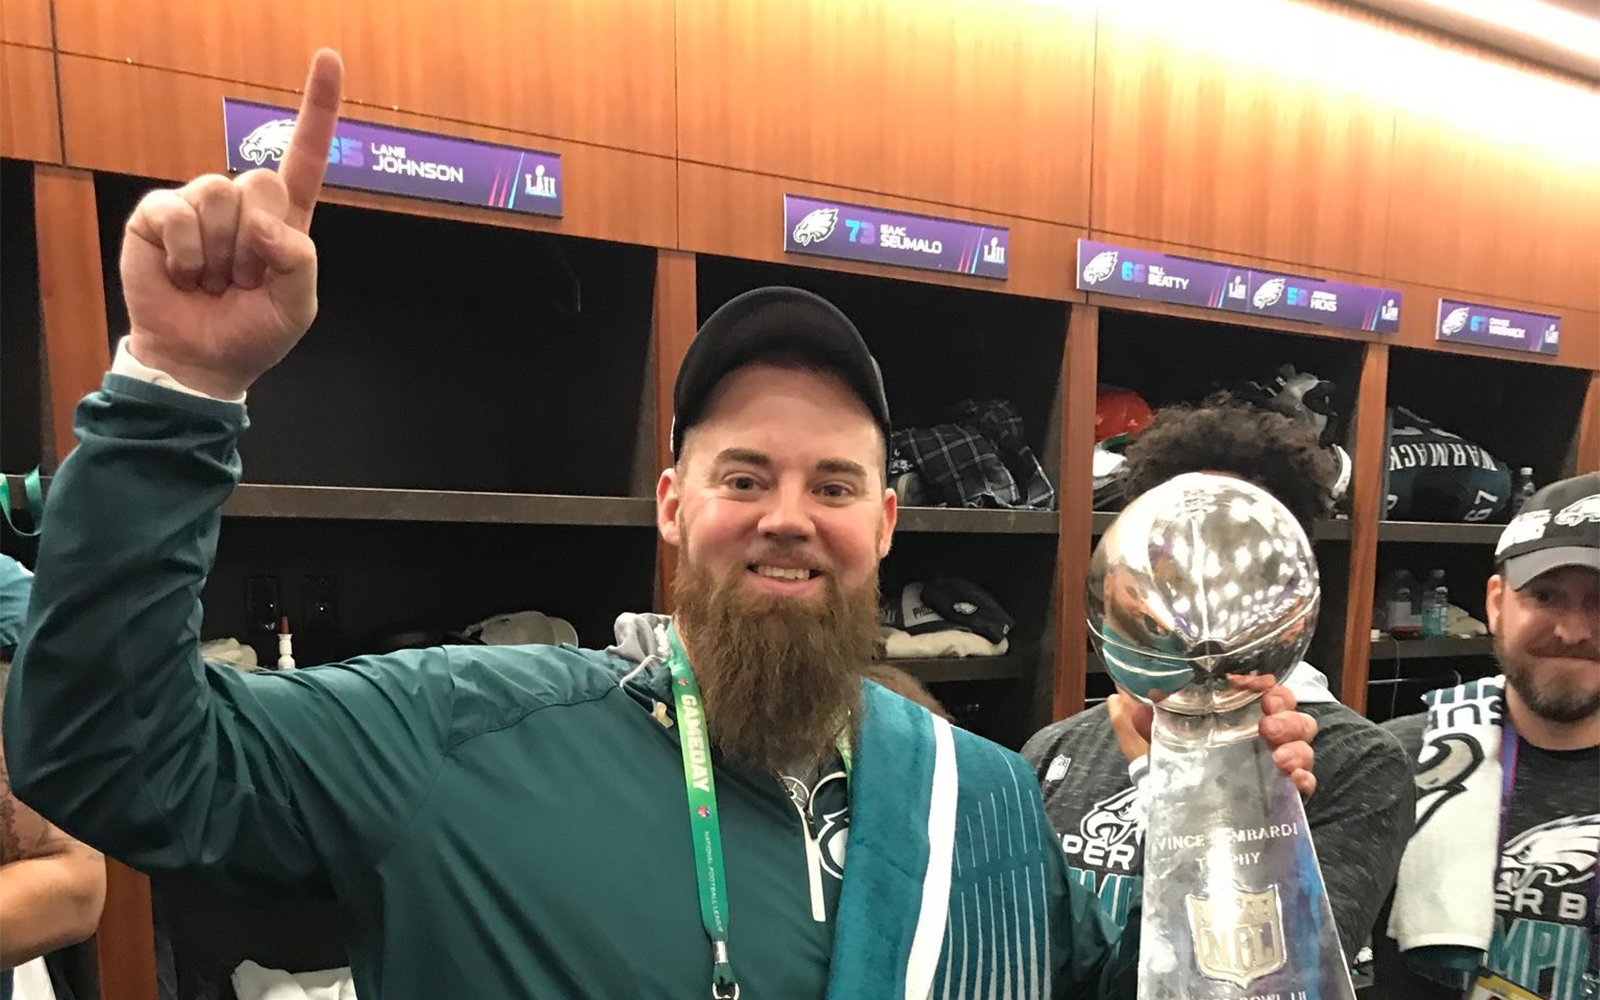 Micah Gerhart_Super Bowl 2018 win_Featured.jpg